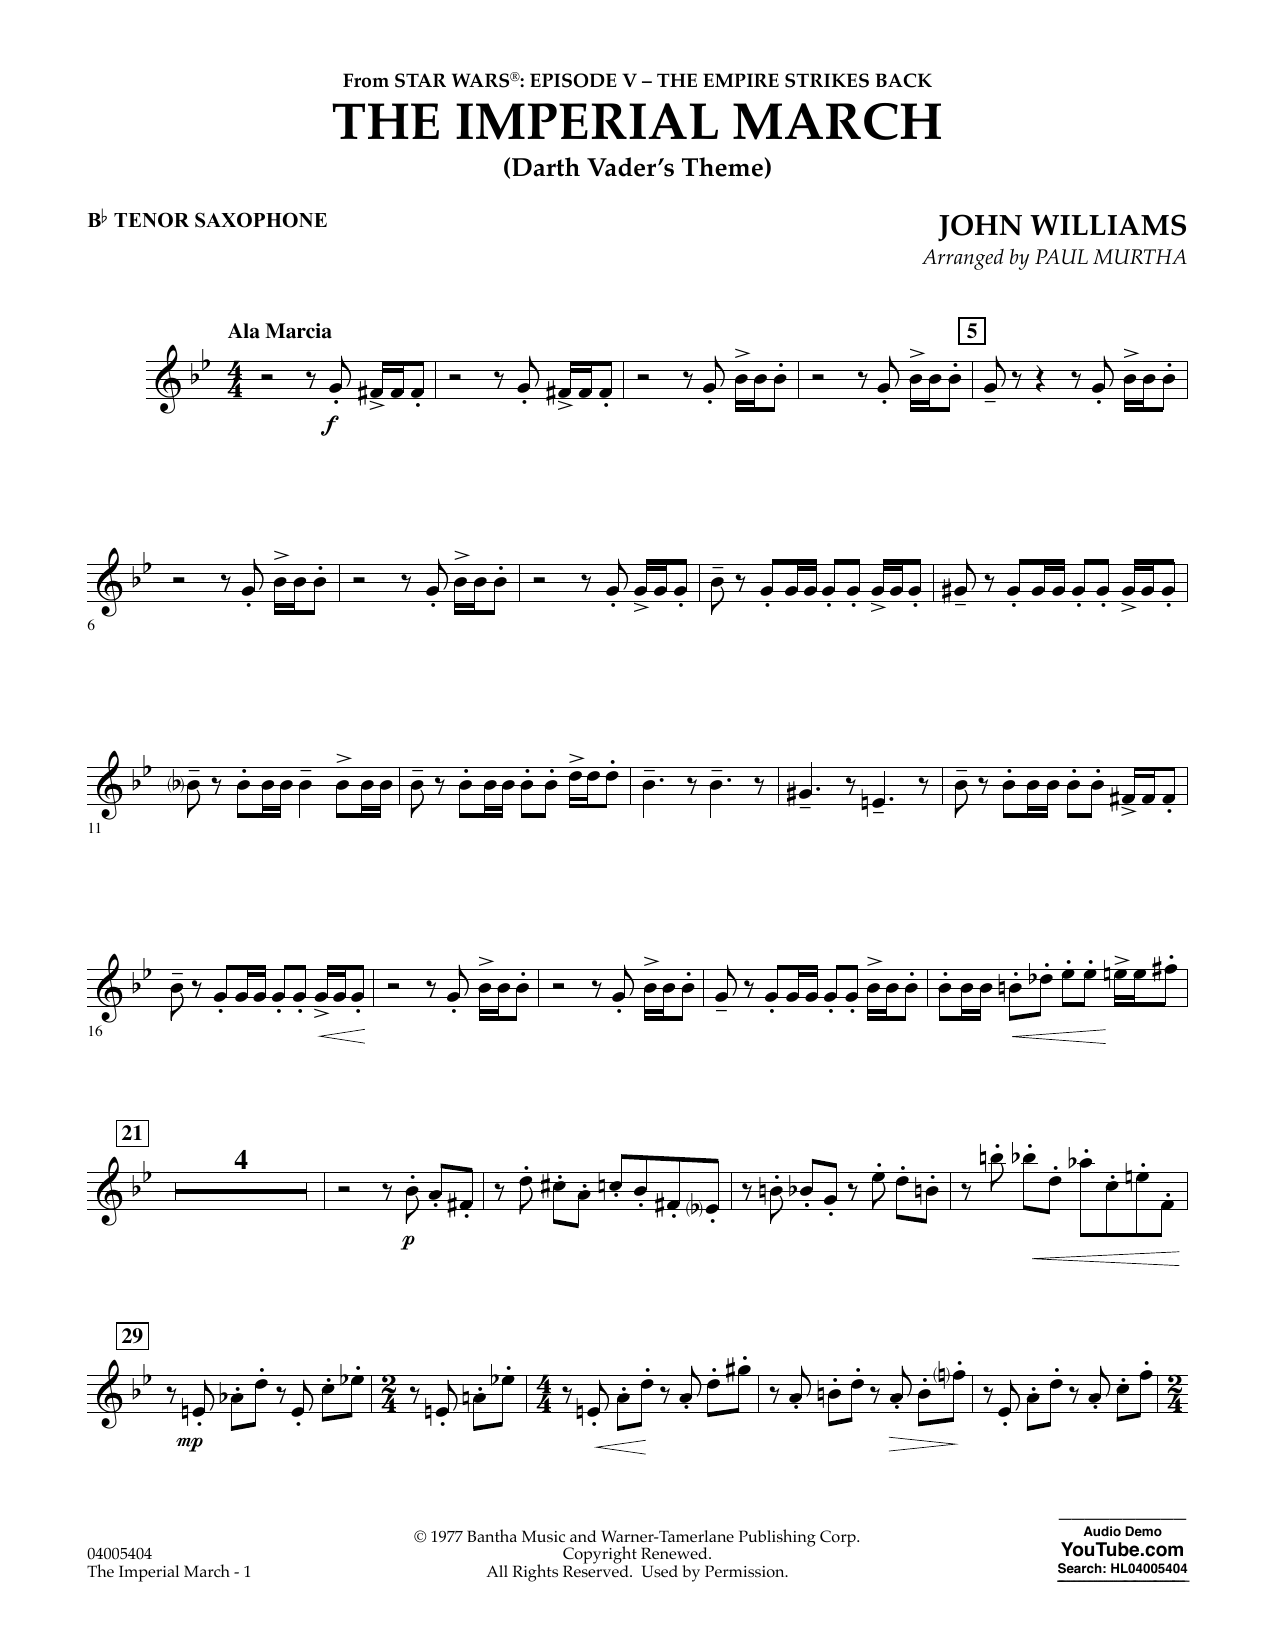 Paul Murtha The Imperial March (Darth Vader's Theme) - Bb Tenor Saxophone sheet music notes and chords. Download Printable PDF.